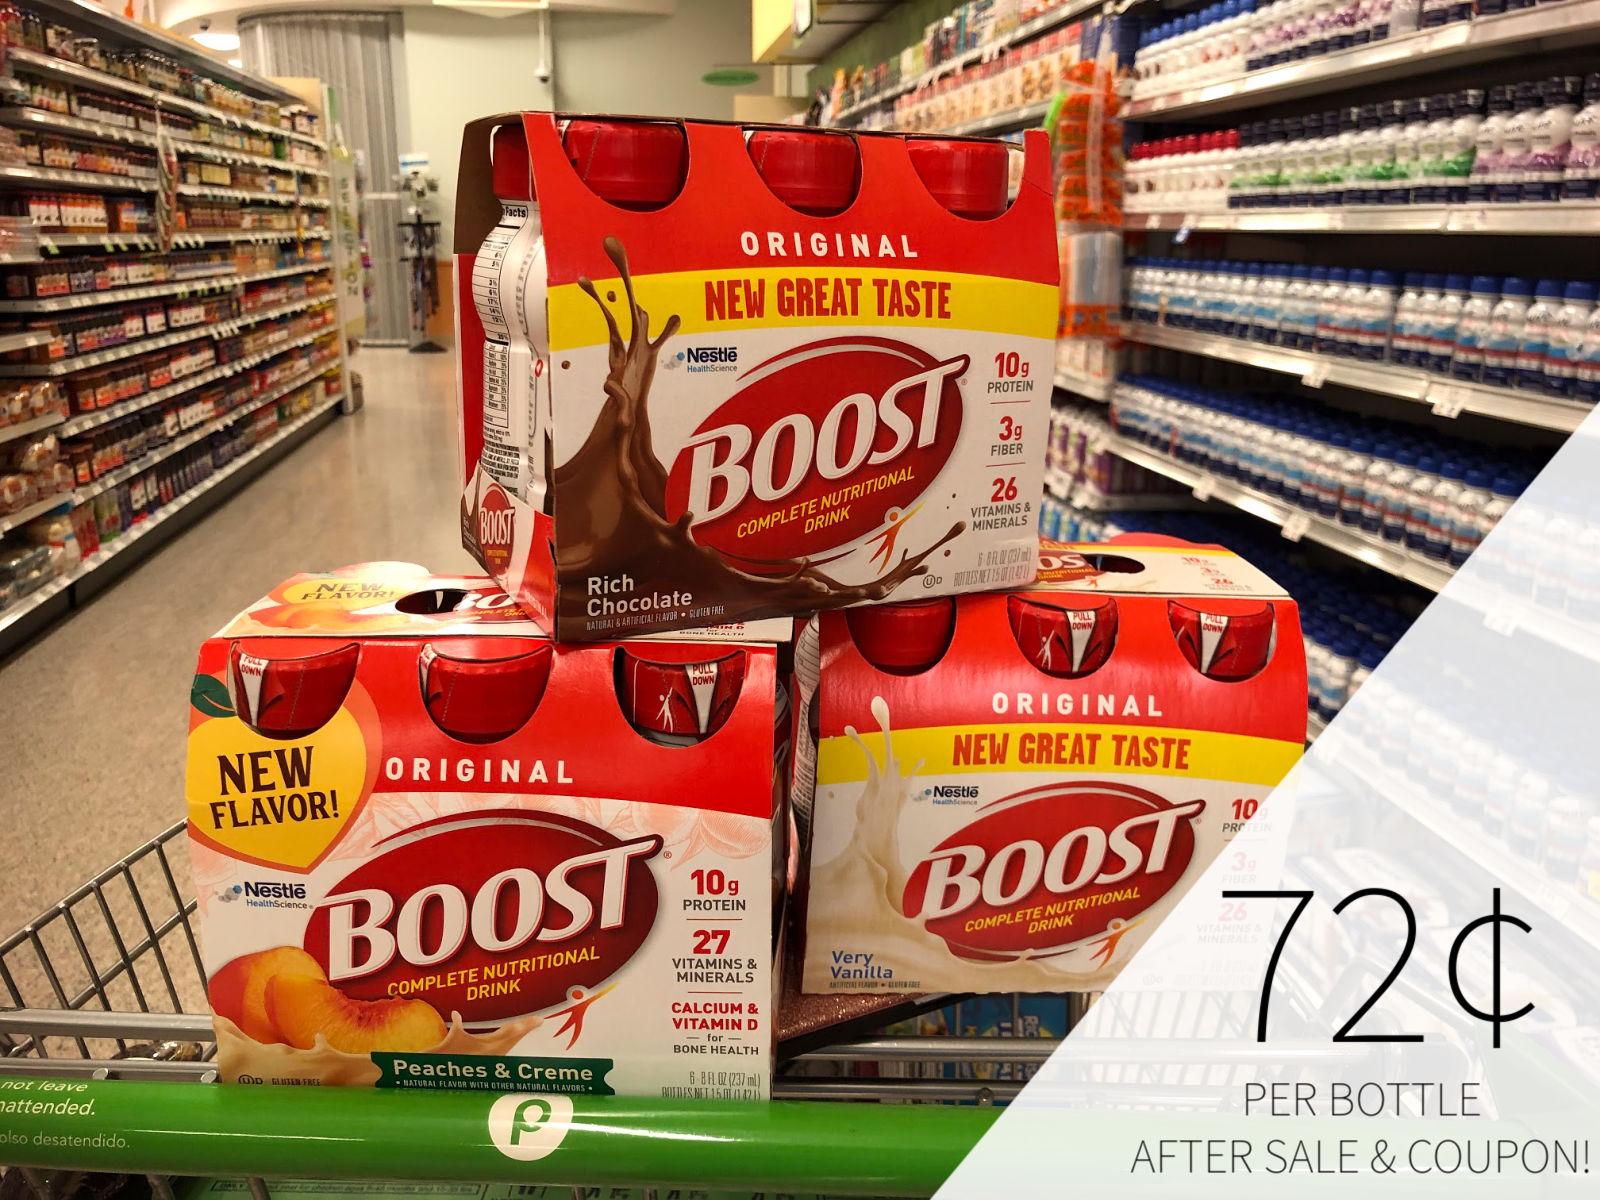 Stock Up On All Your Favorite BOOST® Nutritional Drinks This Week At Publix on I Heart Publix